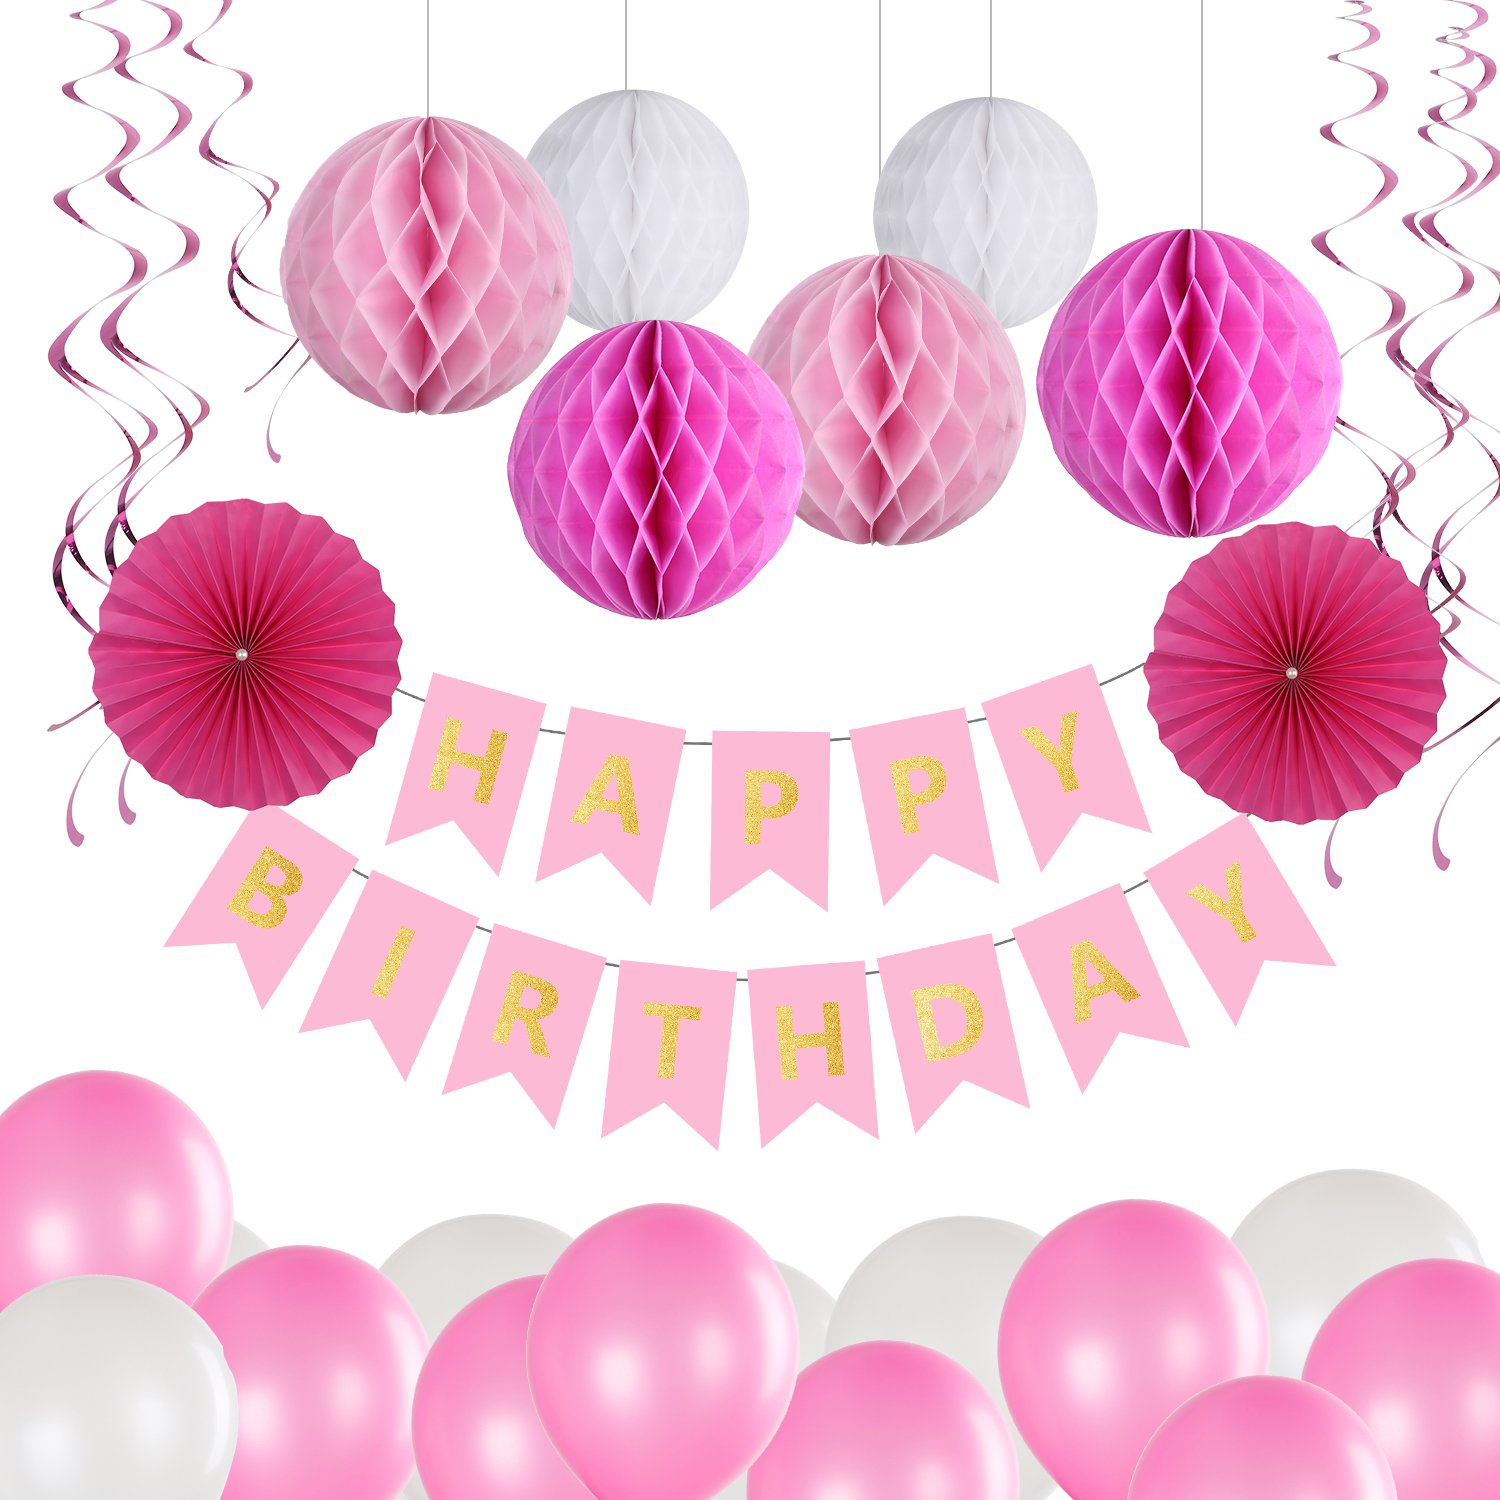 Sector Paper Flower and 10 Hanging Swirl Decorations for Girls Boys Bliqniq Birthday Party Decorations Kit Balloons Paper Honeycomb Balls 40 Deco Supplies with Happy Birthday Banner Flags